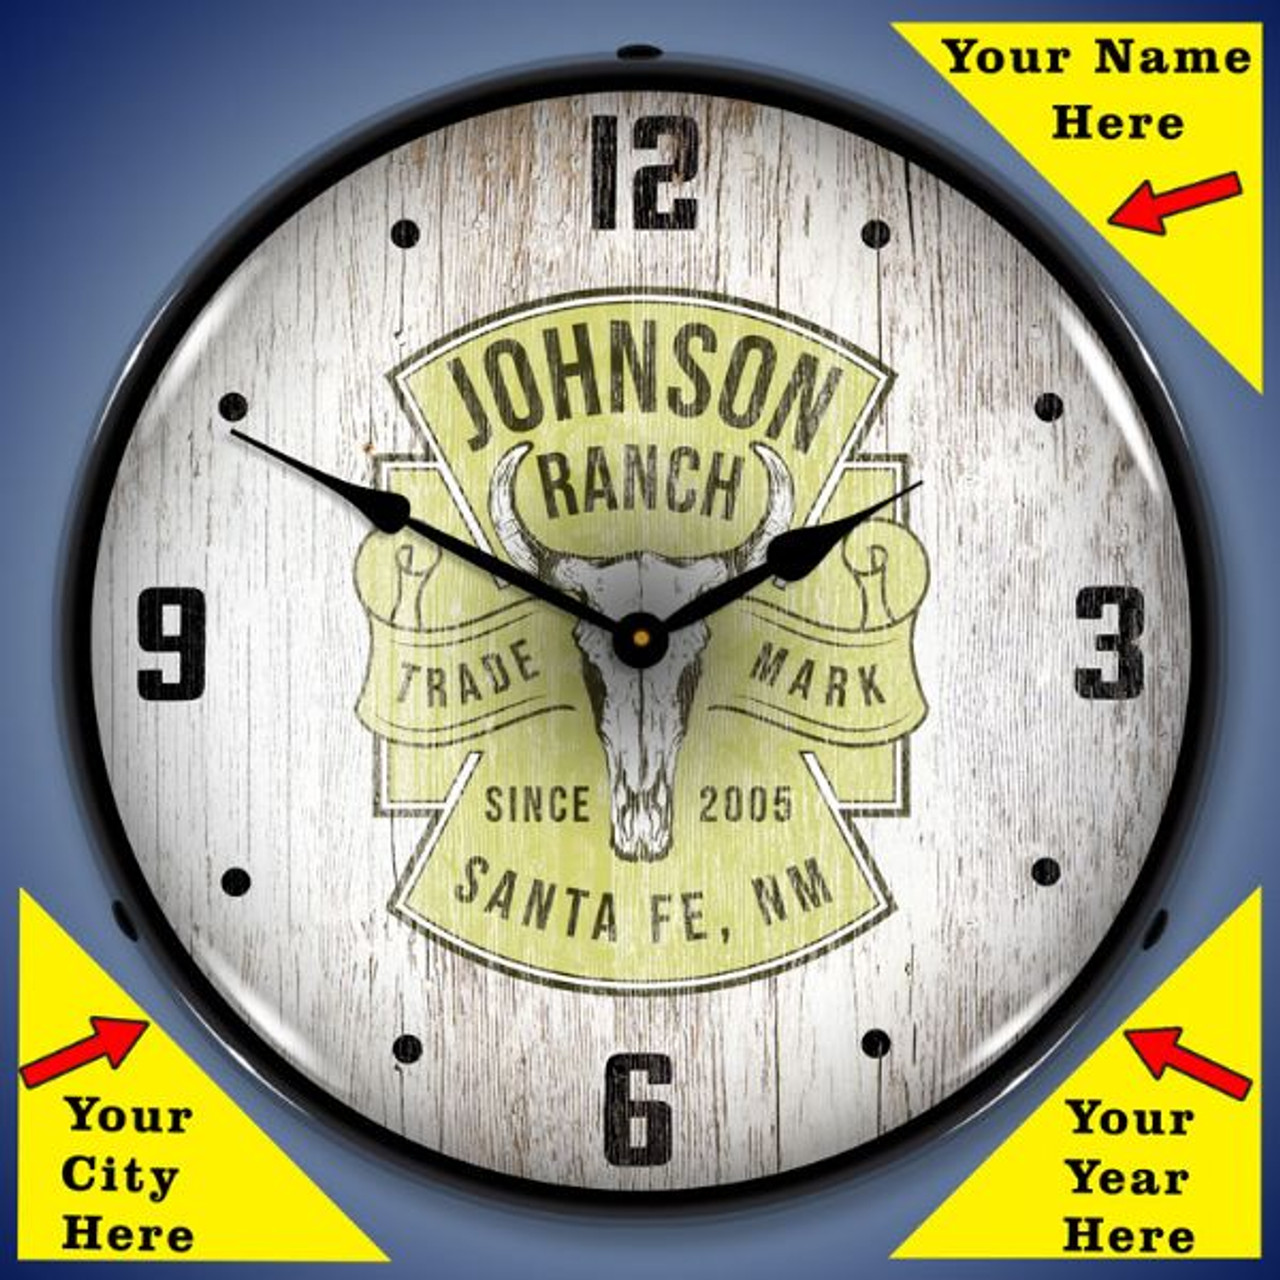 Personalized Rustic Ranch LED Lighted Wall Clock 14 x 14 Inches